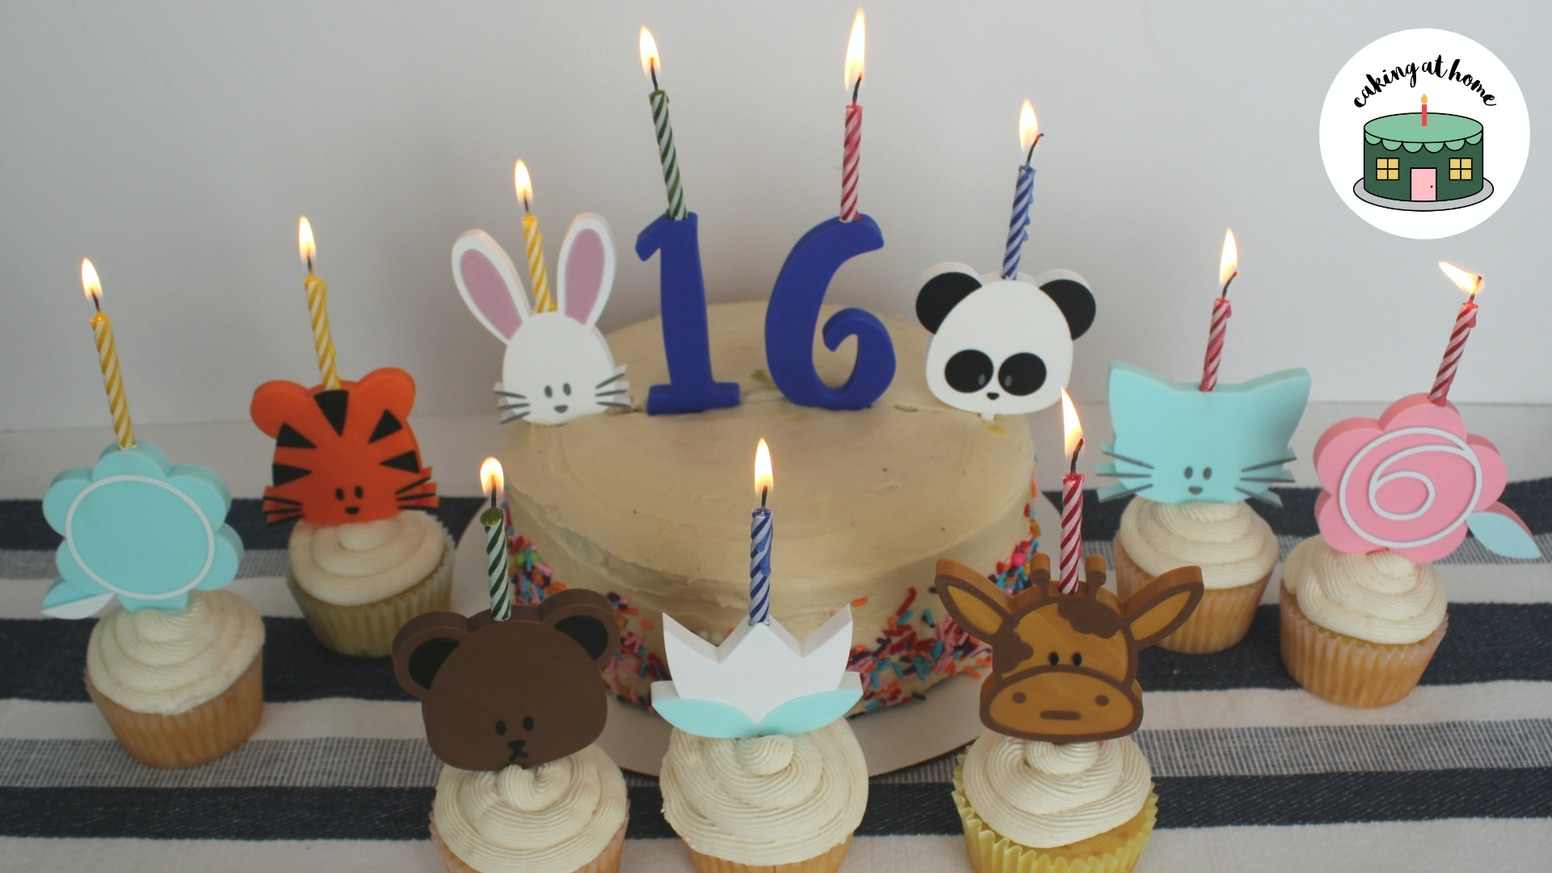 Candle Holding Cake Toppers By Caking At Home Kickstarter